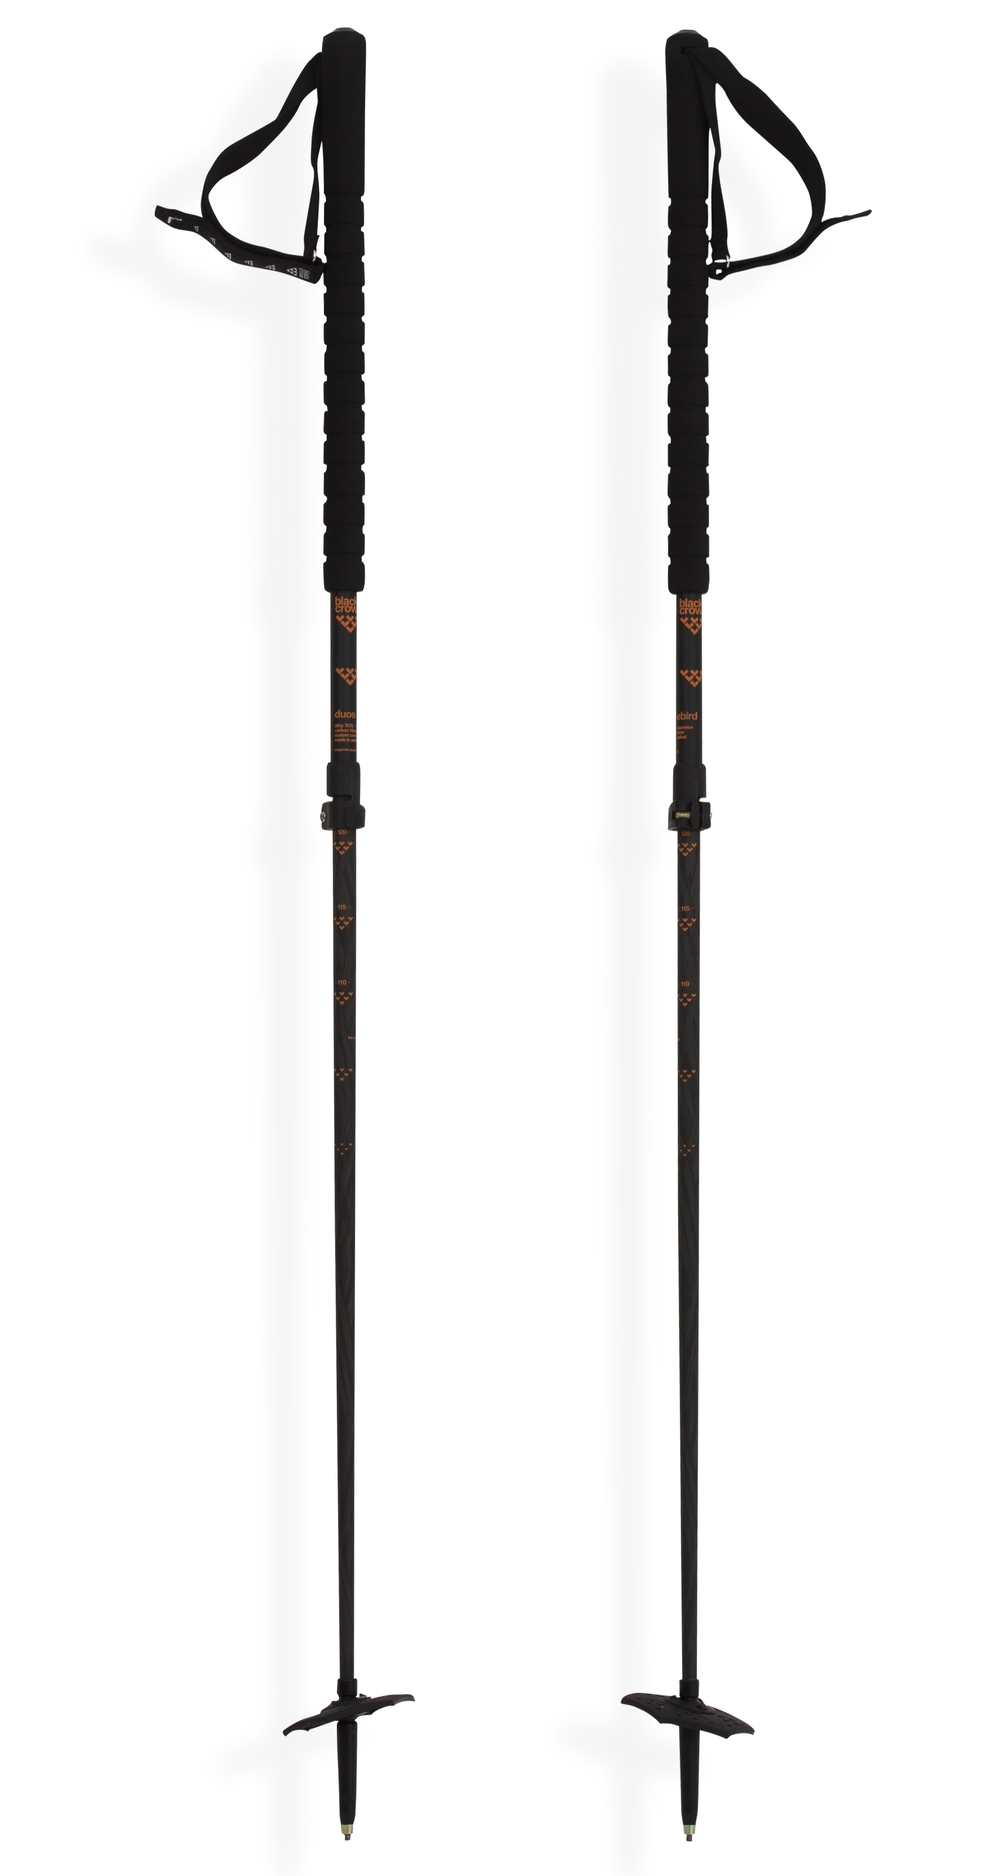 Black Crows Duos Freebird Poles, $120